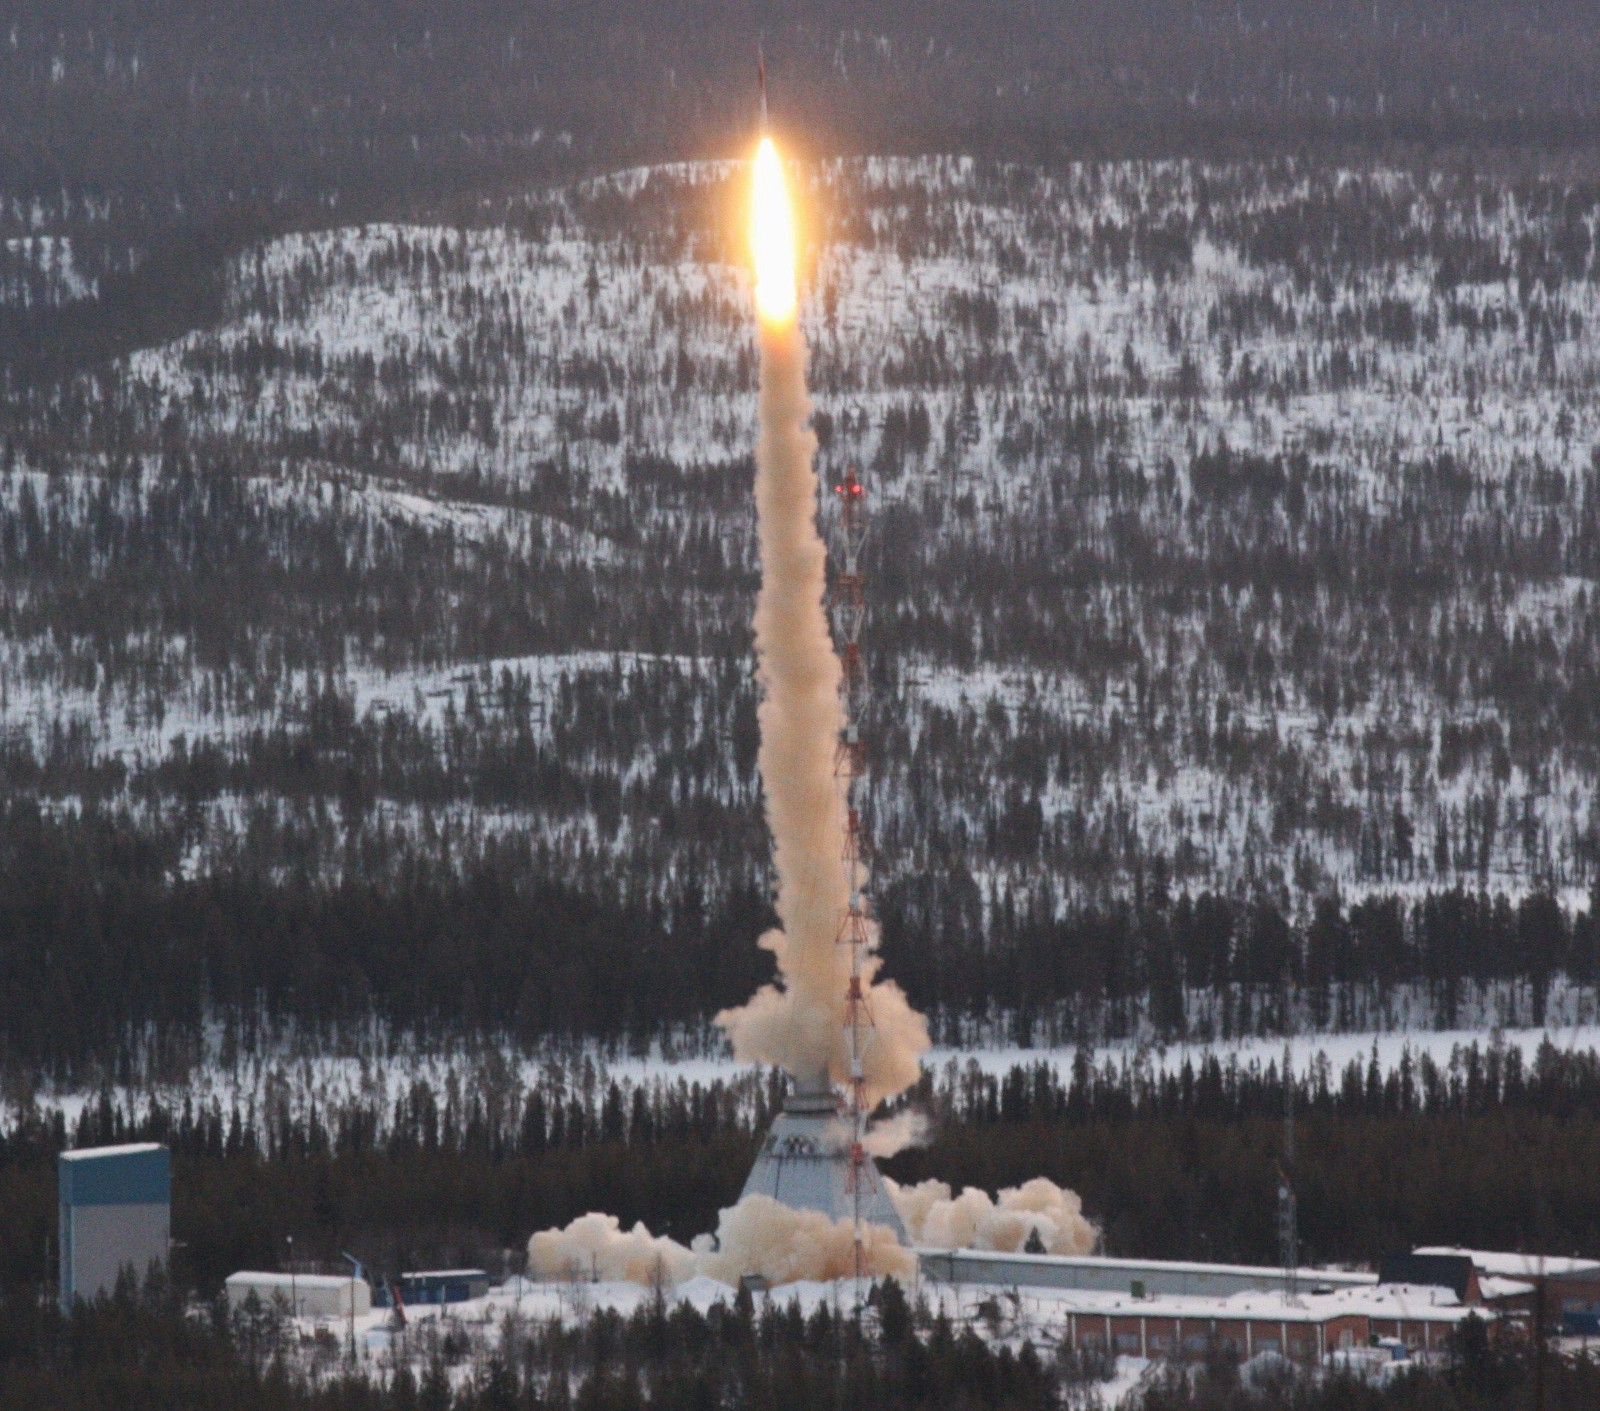 The TEXUS mission sounding rocket taking off in March 2011 from Kiruna, Sweden.